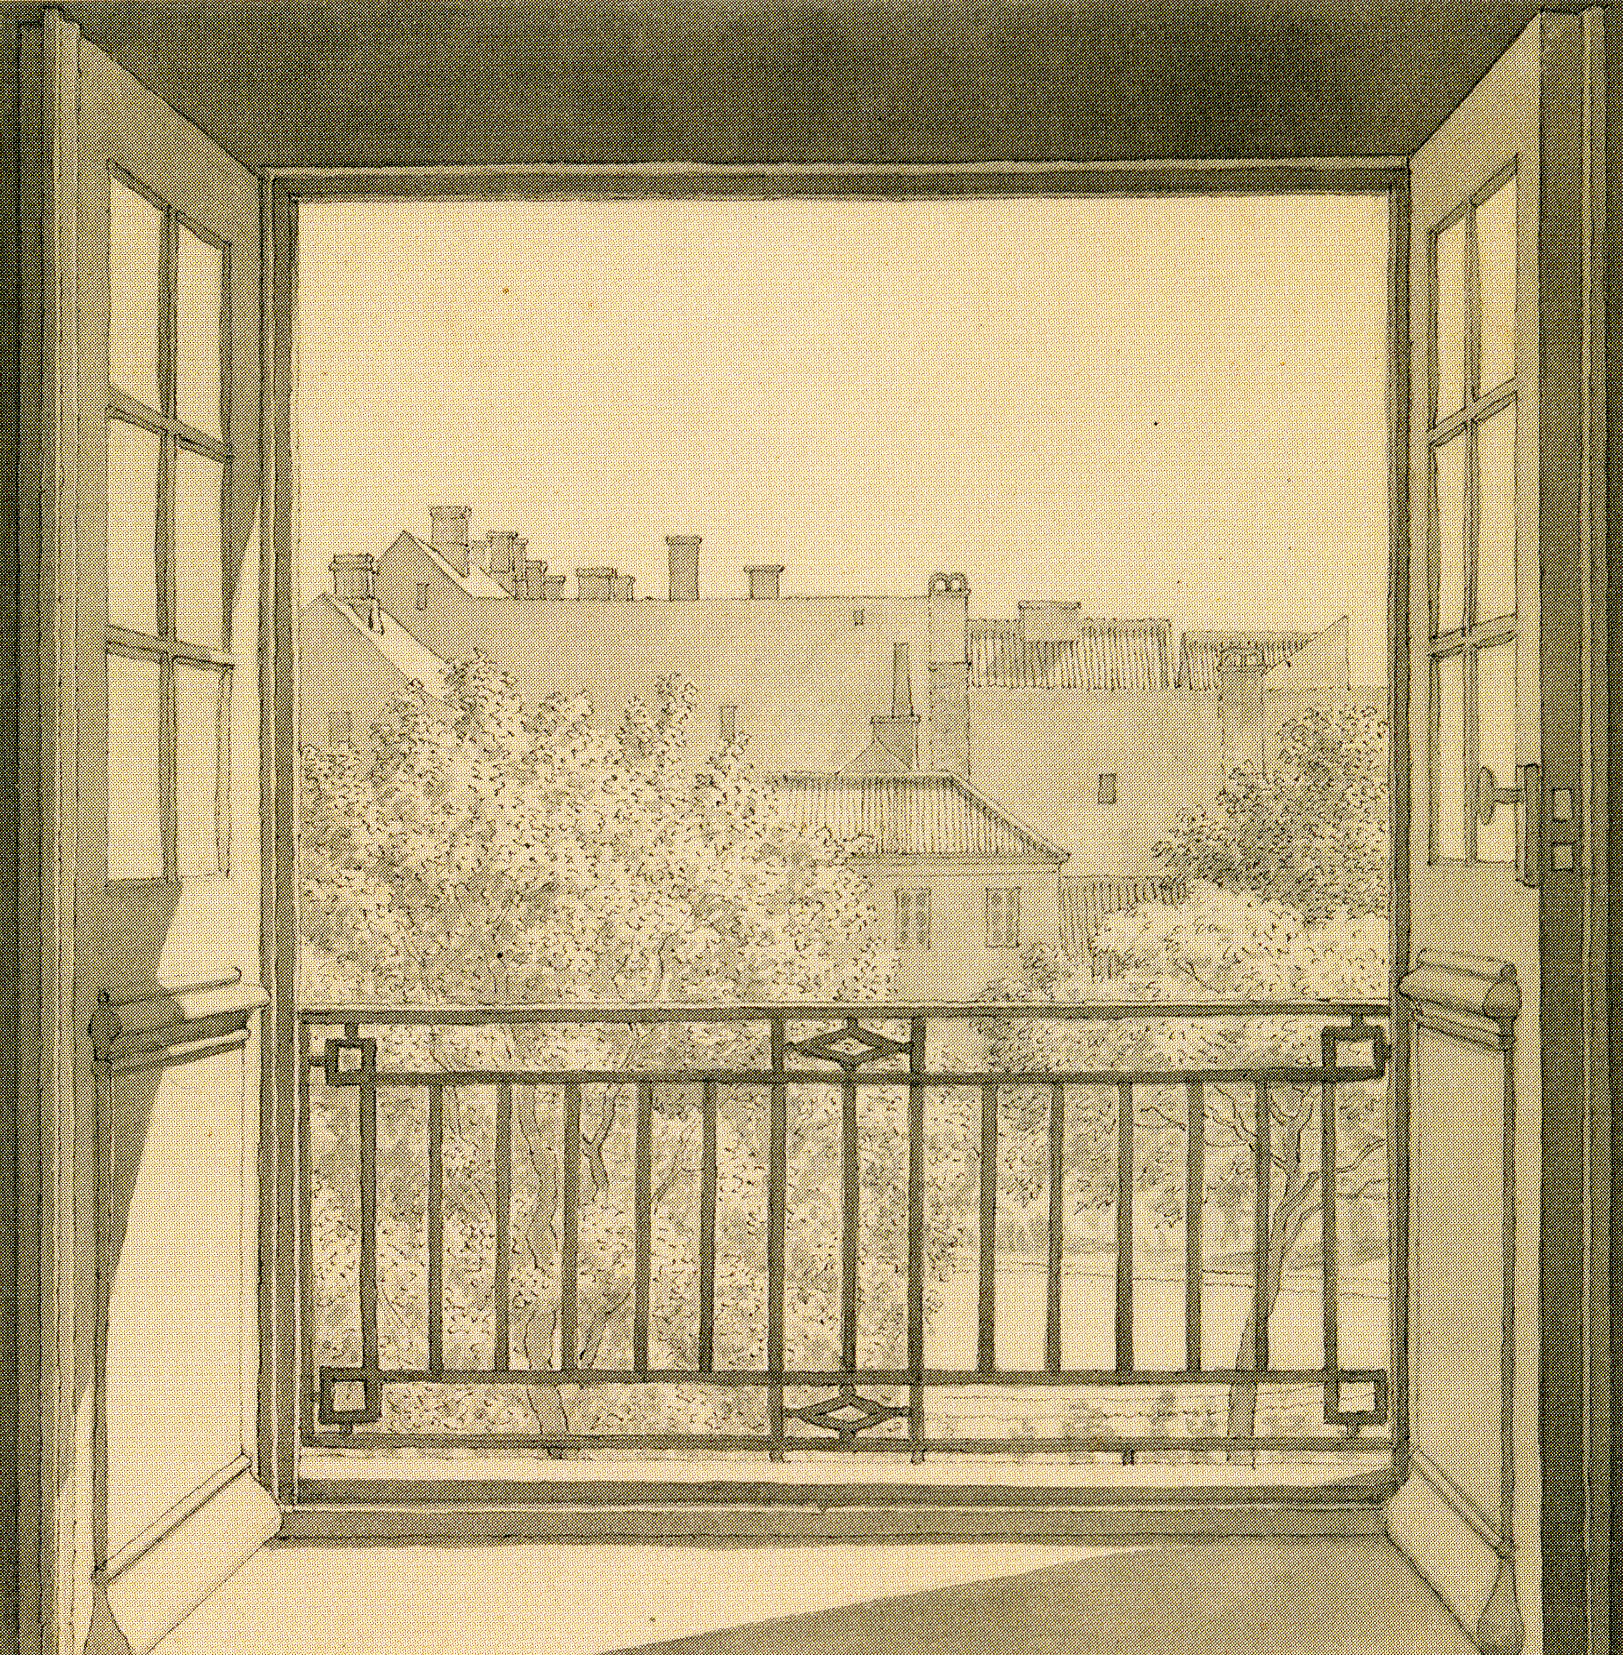 Eckersberg_View from the Domed Hall at Charlottenborg in Copenhagen, 1845_p170